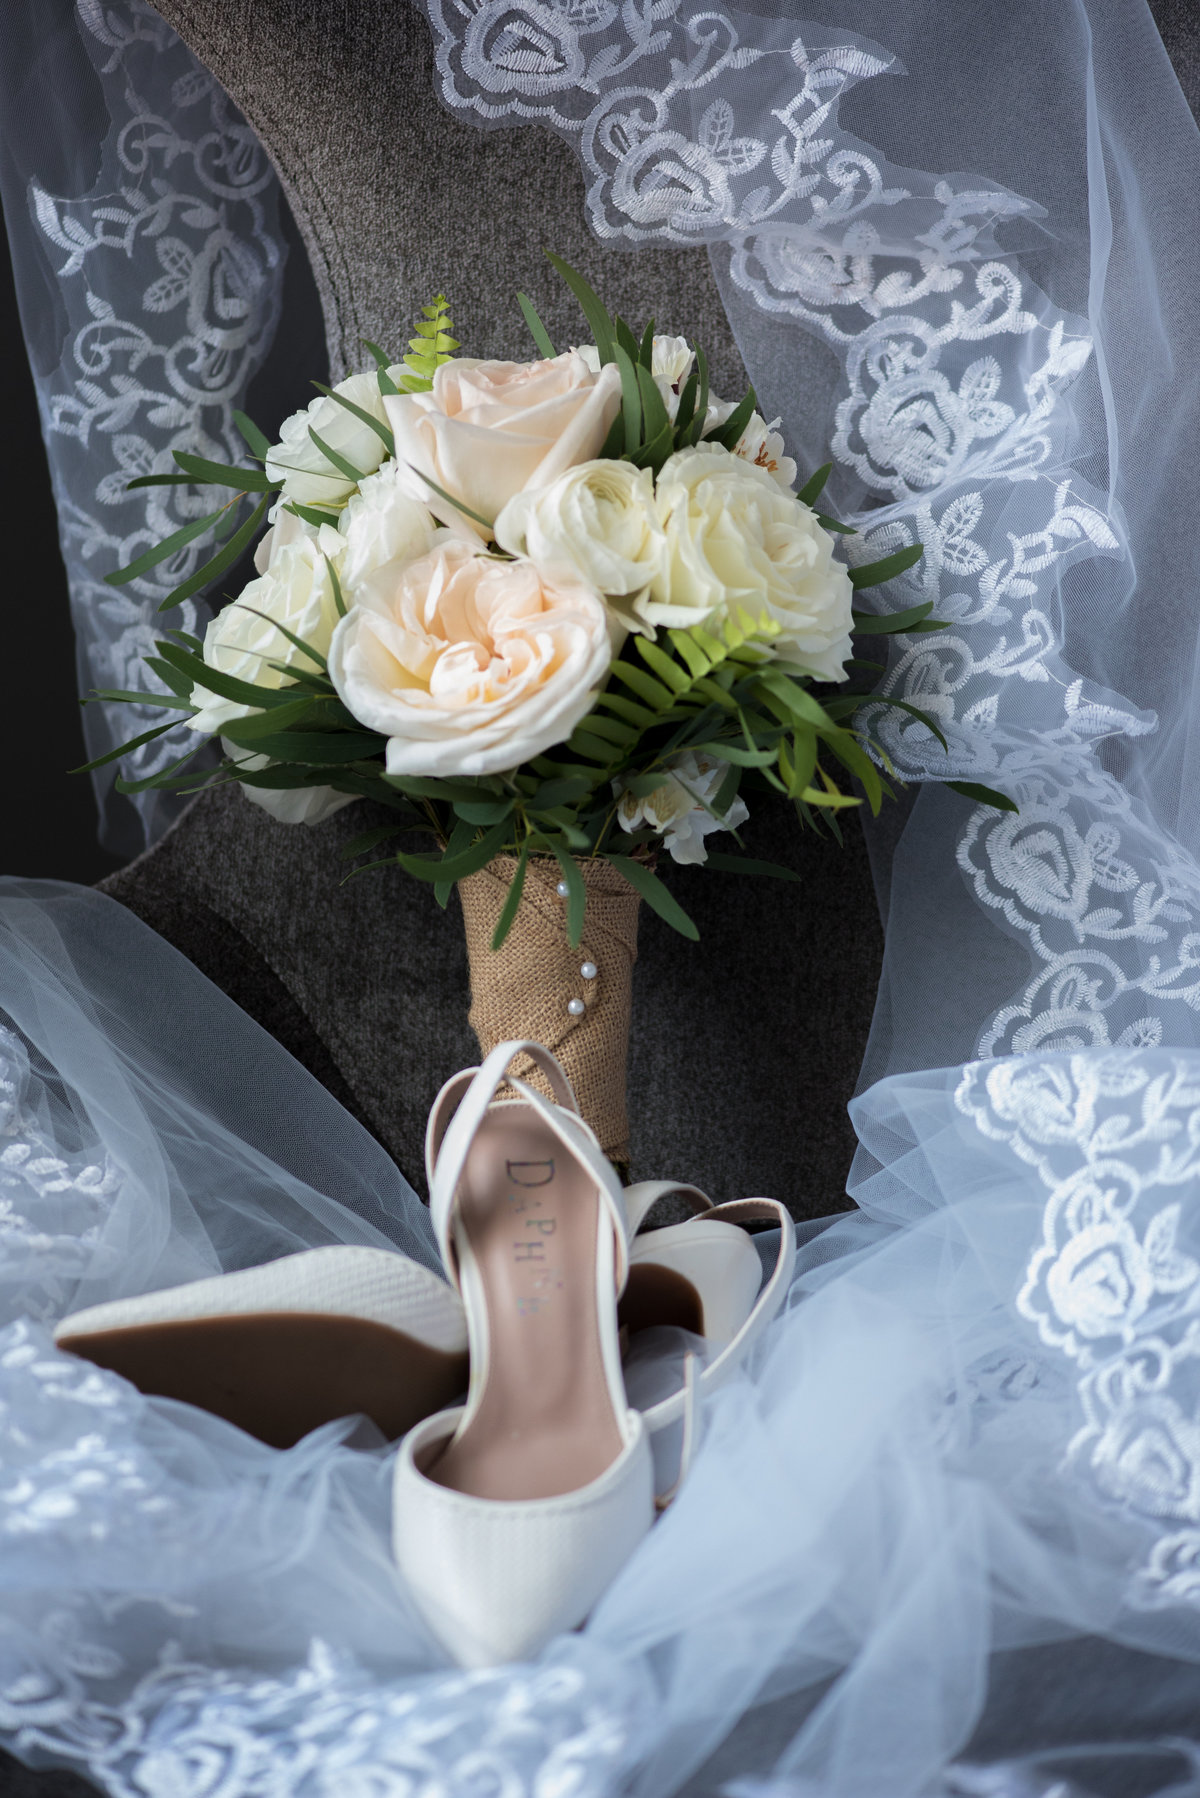 Renaissance Hotel, Albany, NY, cream and blush rose bouquet, tulle and lace veil, ivory ankle strap wedding pumps